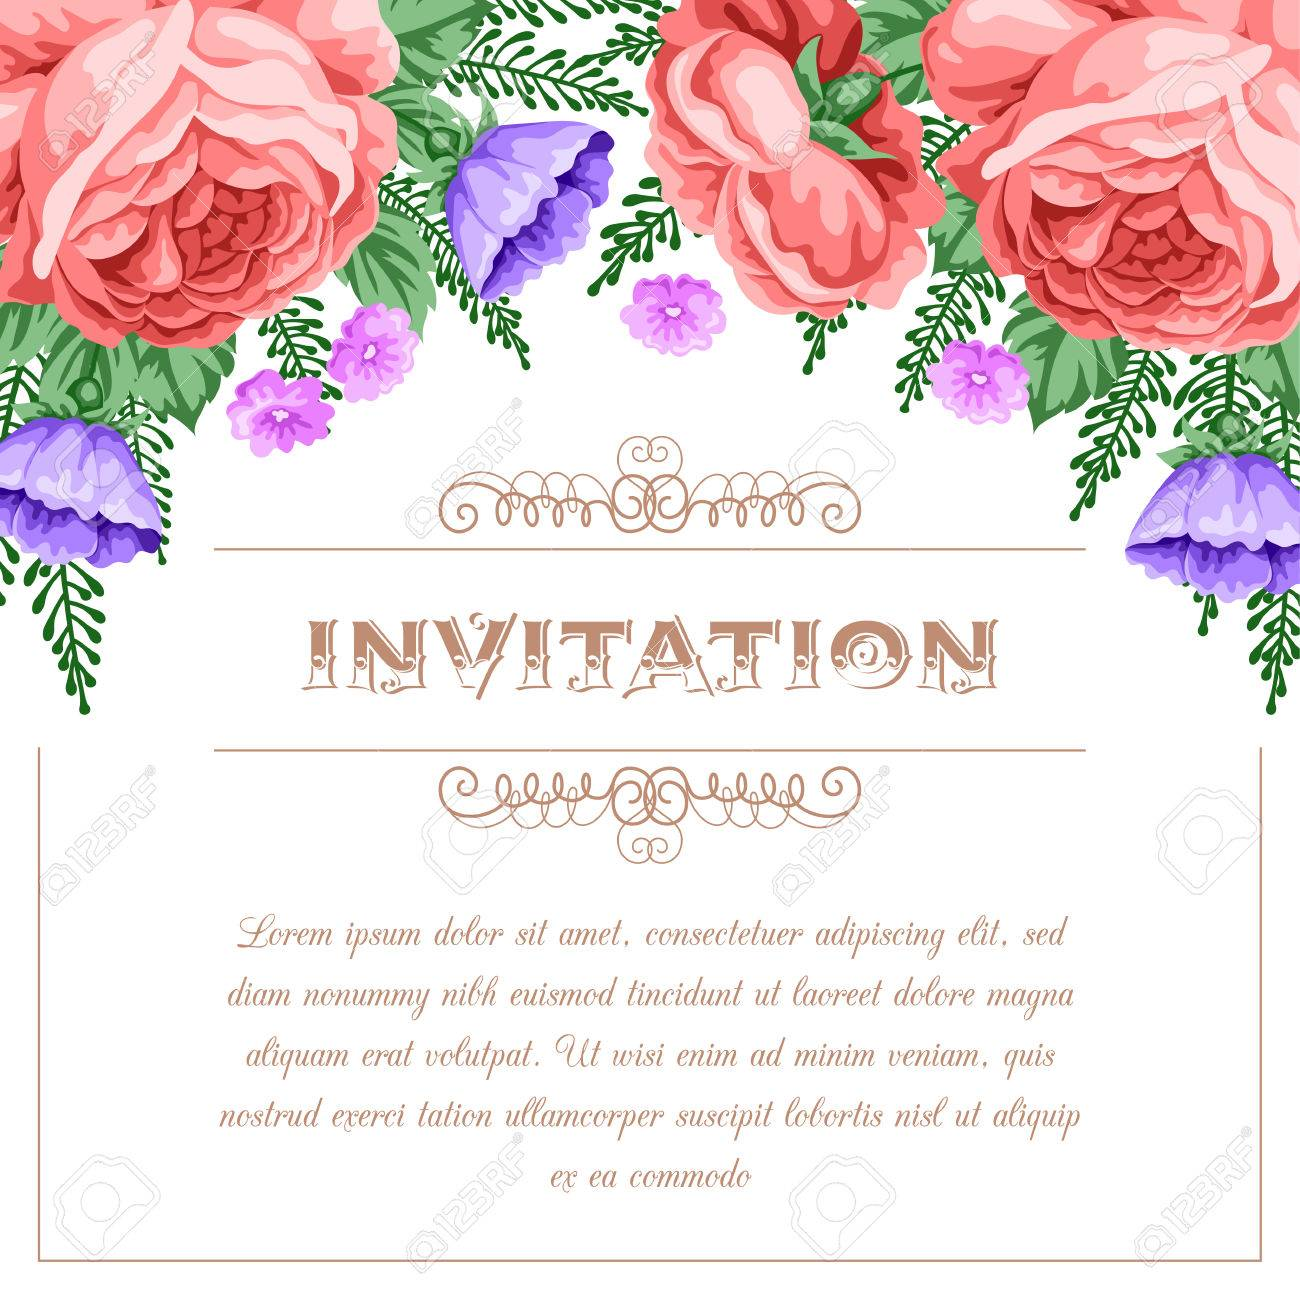 Bridal shower or wedding invitation template with flowers vector bridal shower or wedding invitation template with flowers vector illustration in retro style stock vector stopboris Image collections